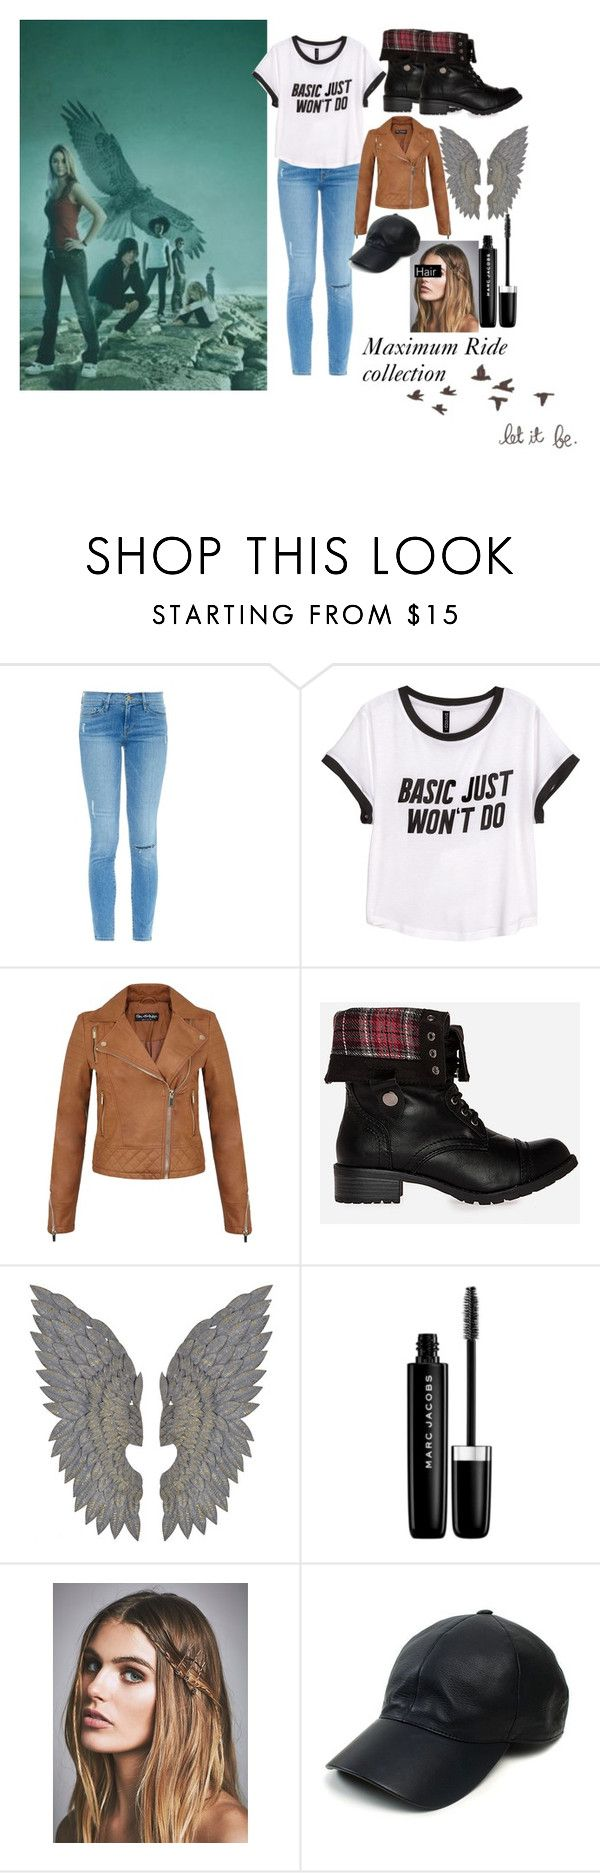 """Maximum Ride"" by walking-in-the-wind ❤ liked on Polyvore featuring Frame Denim, H&M, Miss Selfridge, DailyLook, Marc Jacobs, Free People, Vianel, maximumride and jamespatterson"